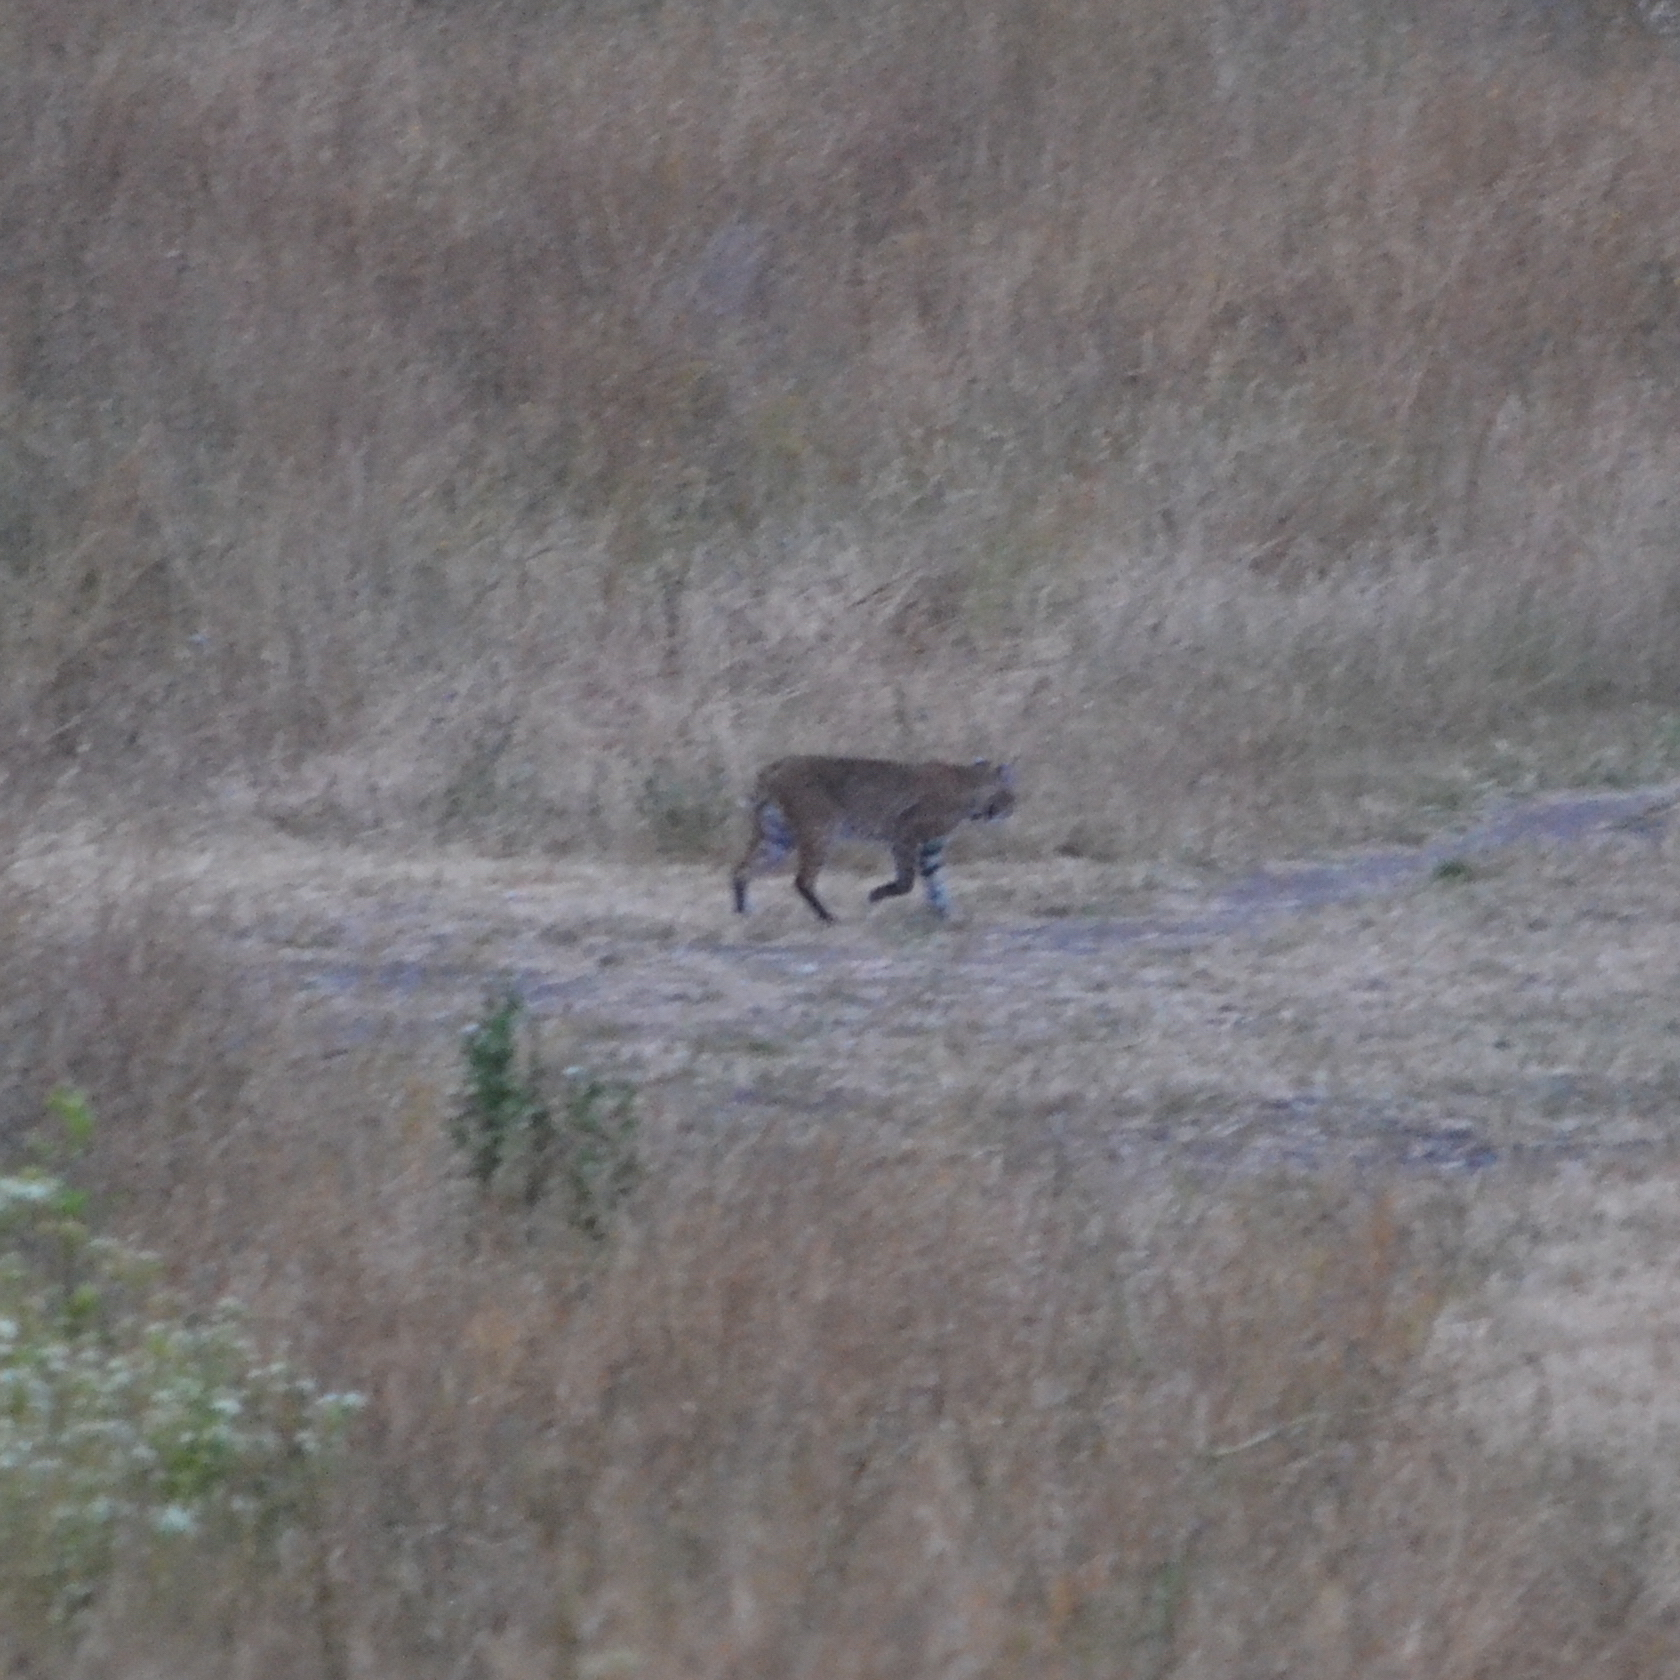 bobcat at wildcat